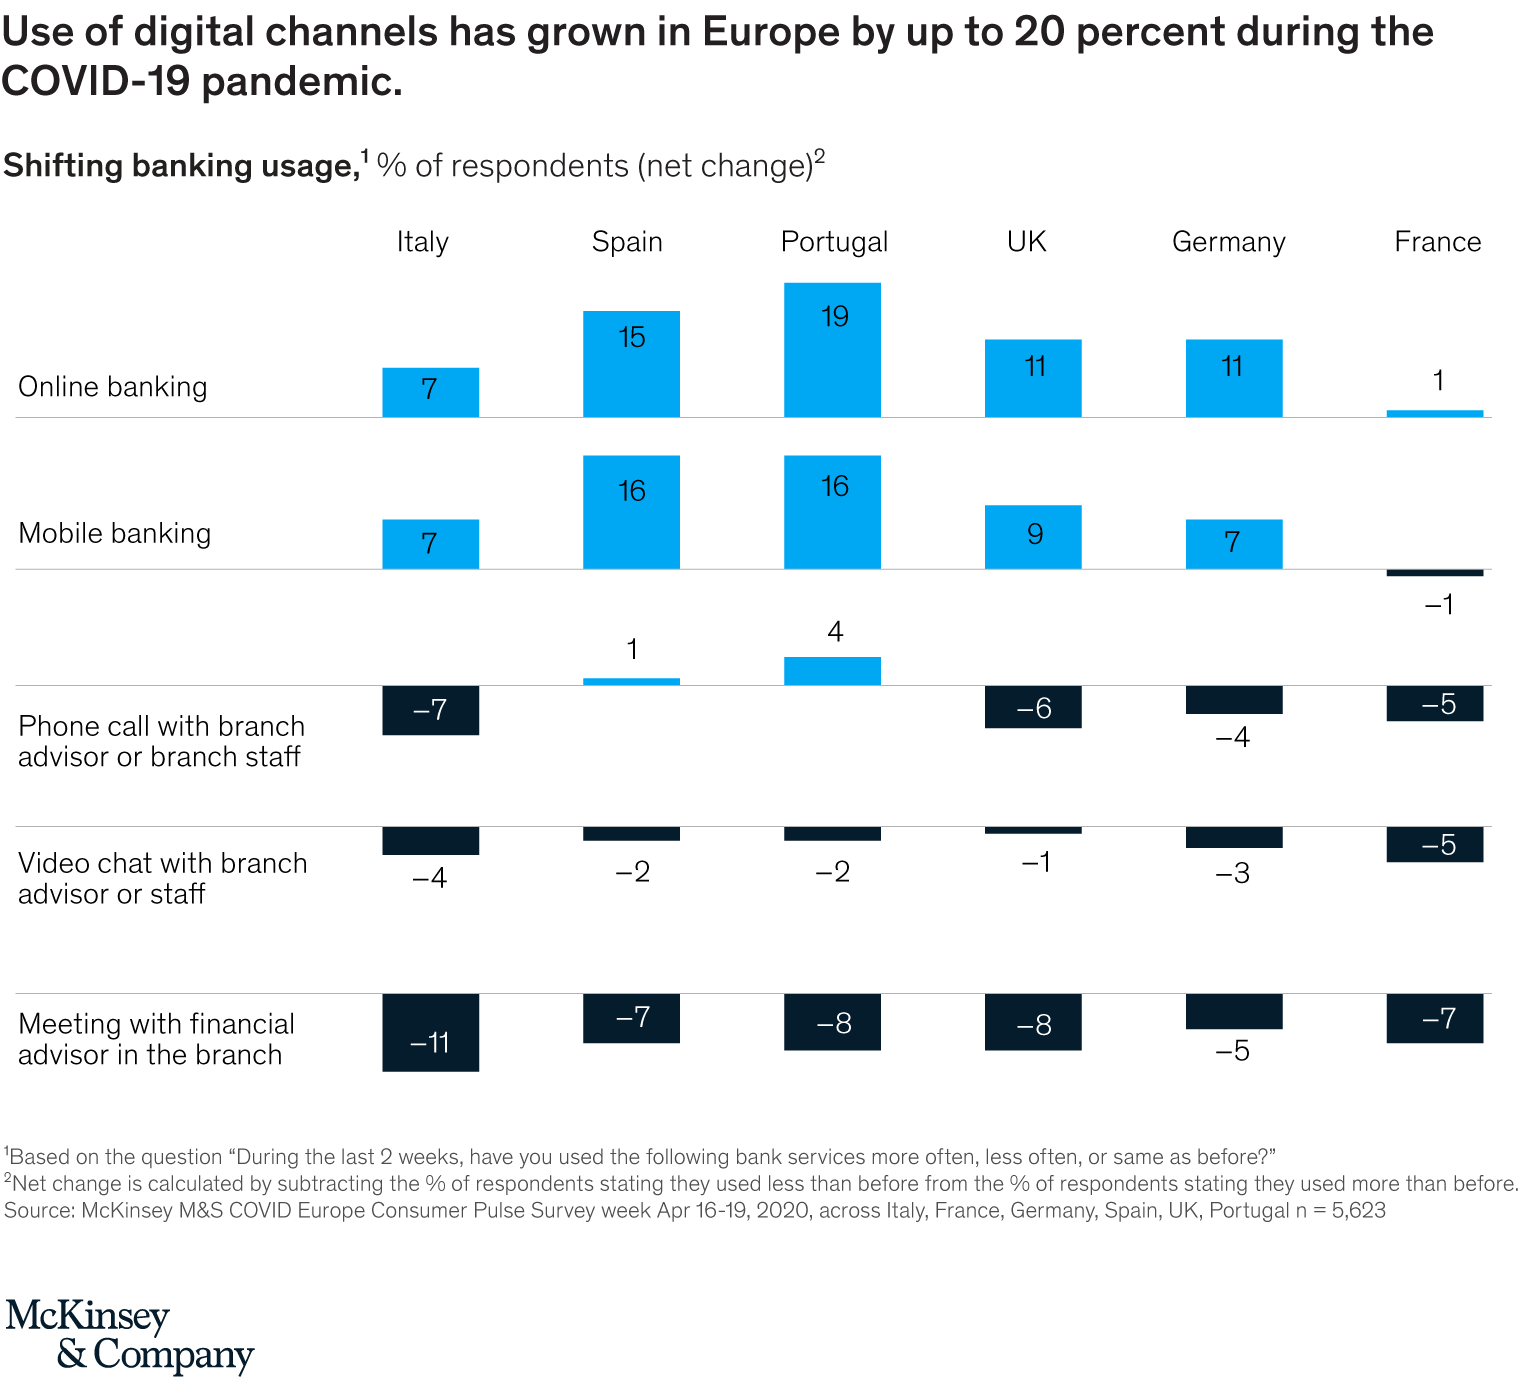 Image- Shifting banking usage, Source- McKinsey M&S COVID Europe Consumer Pulse Survey week Apr 16-19, 2020